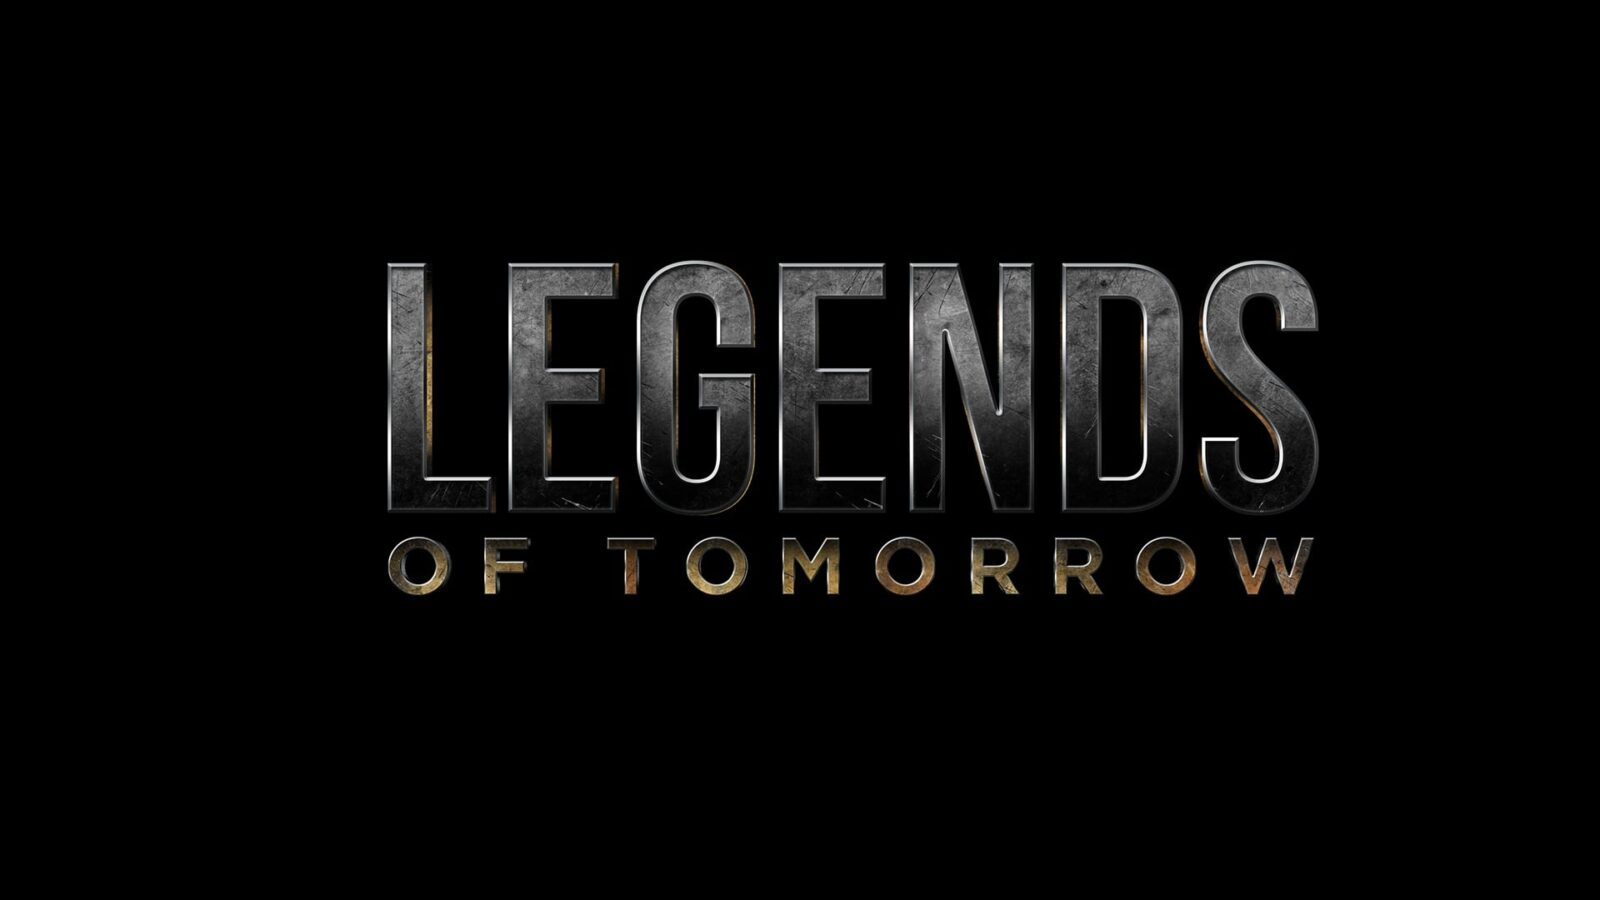 Legends of tomorrow wallpapers hd download dcs legends of tomorrow black logo hd wallpapers voltagebd